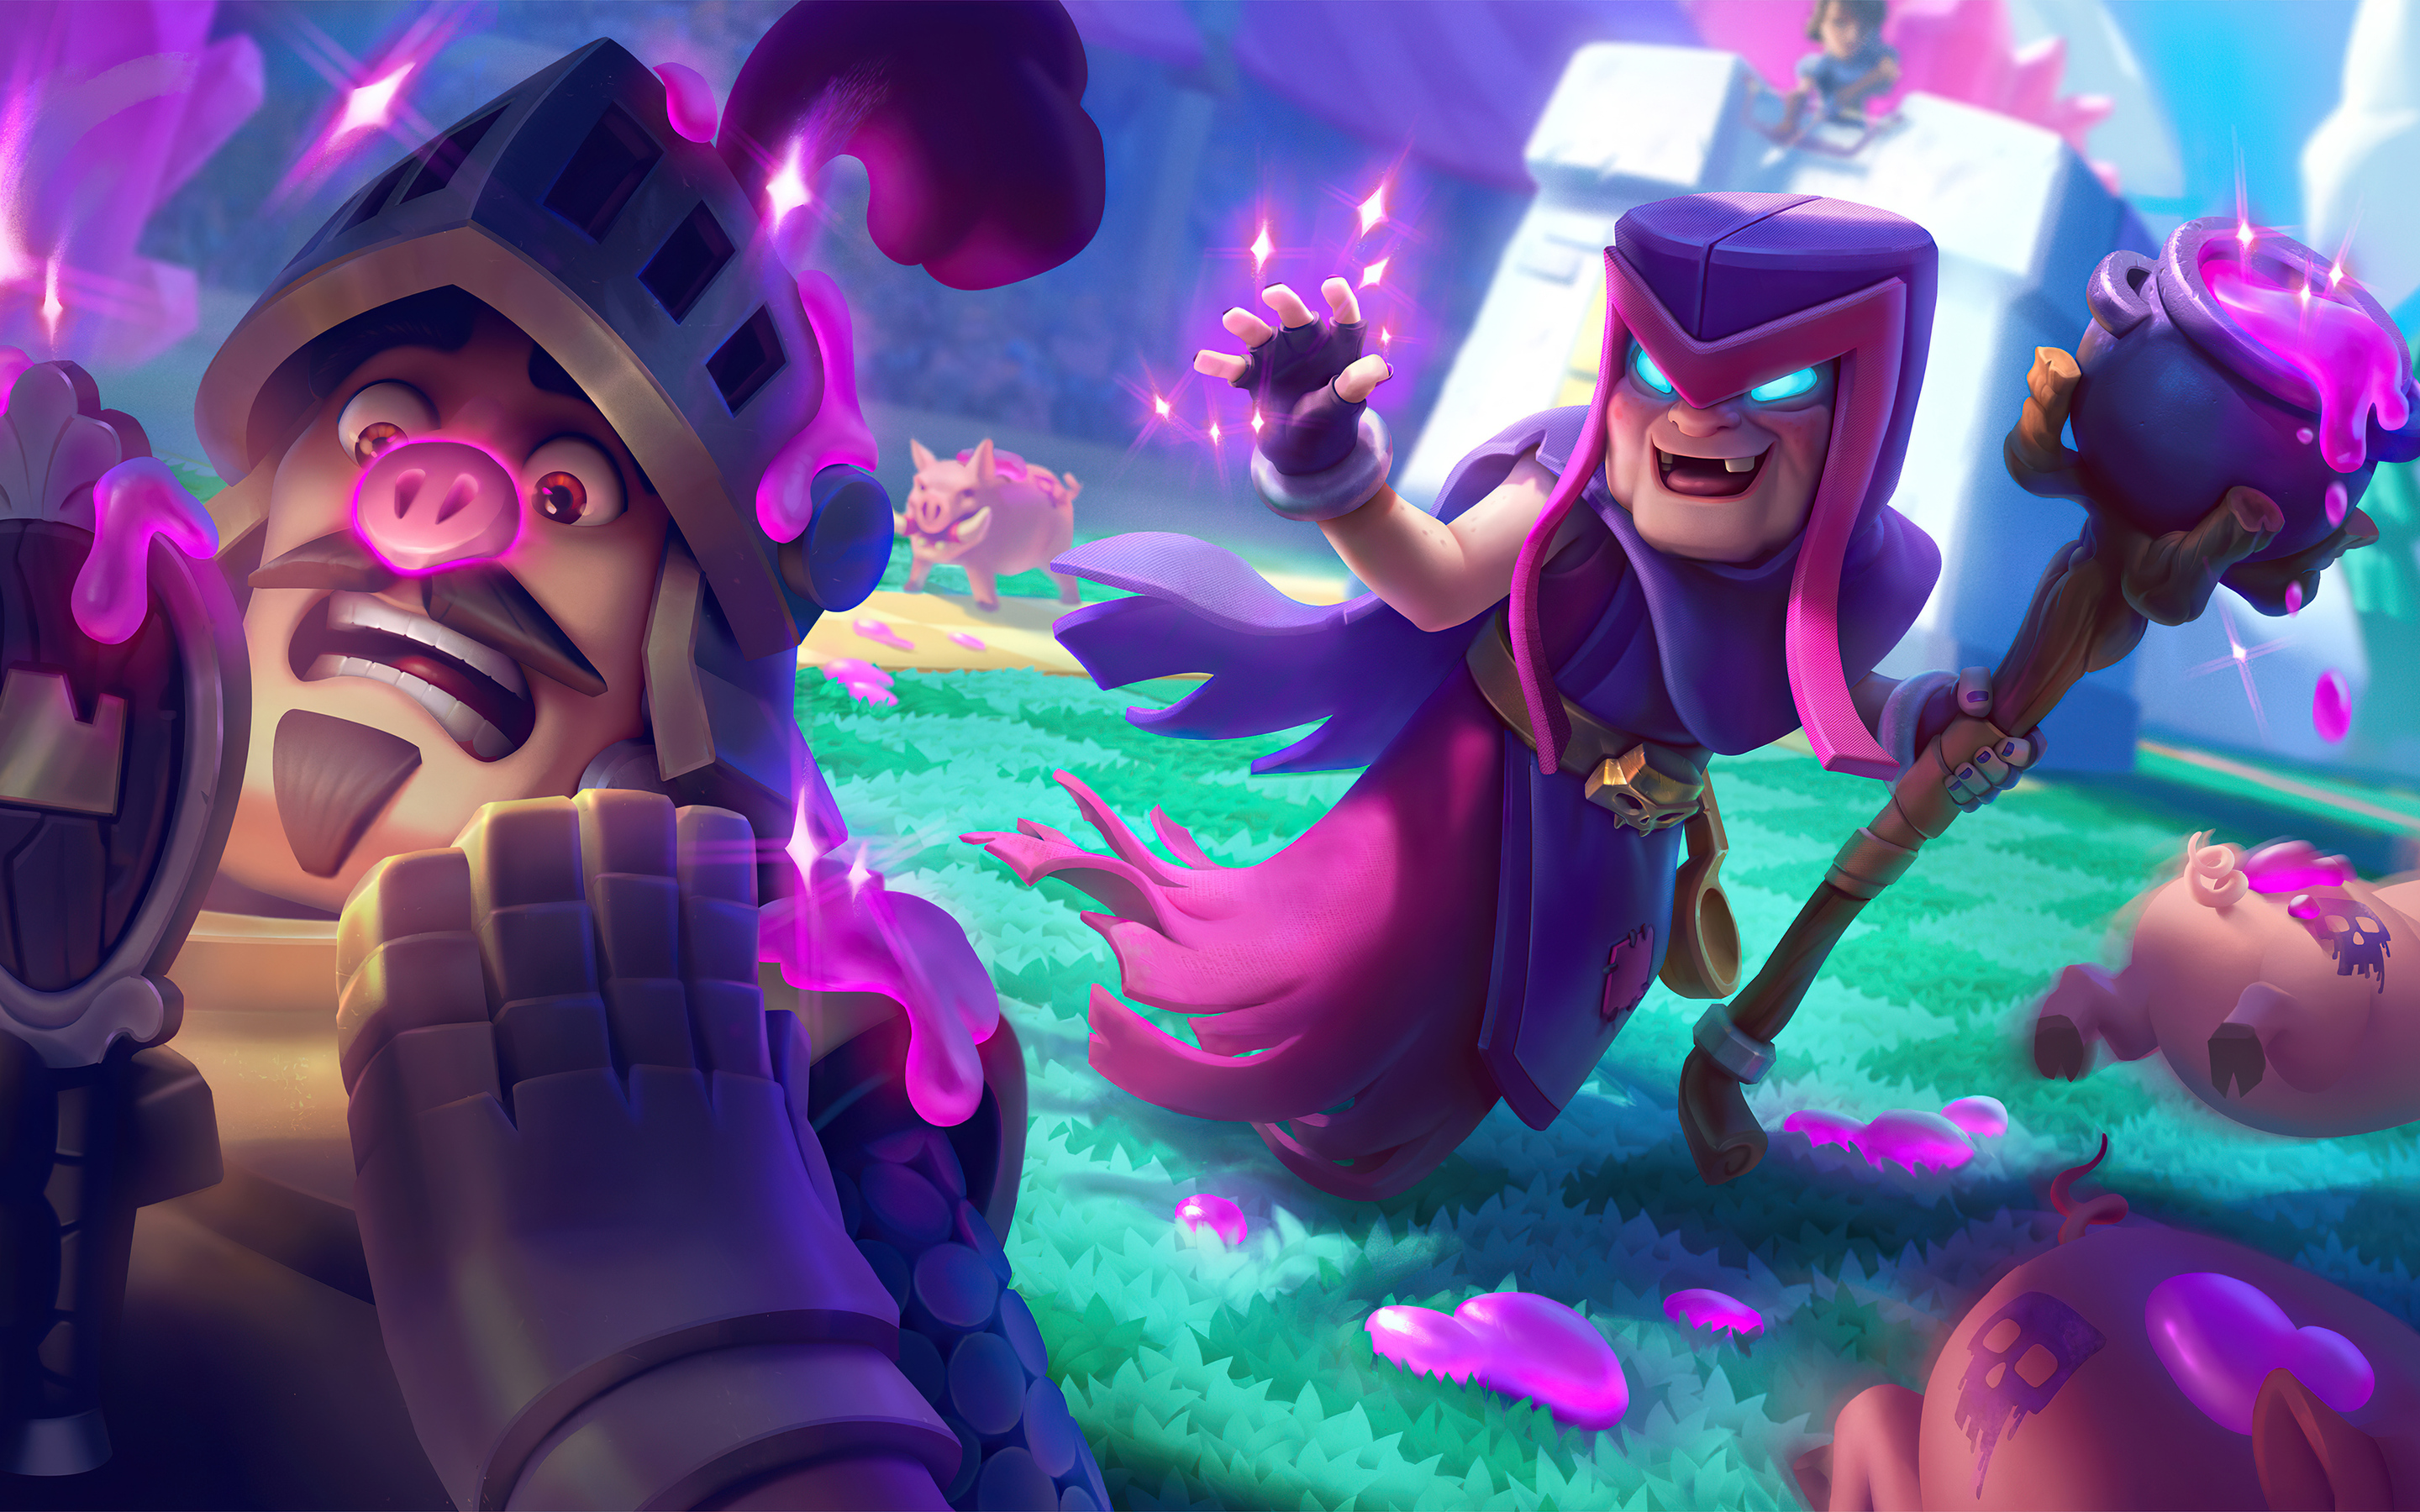 motherwitch-clash-royale-4k-rx.jpg